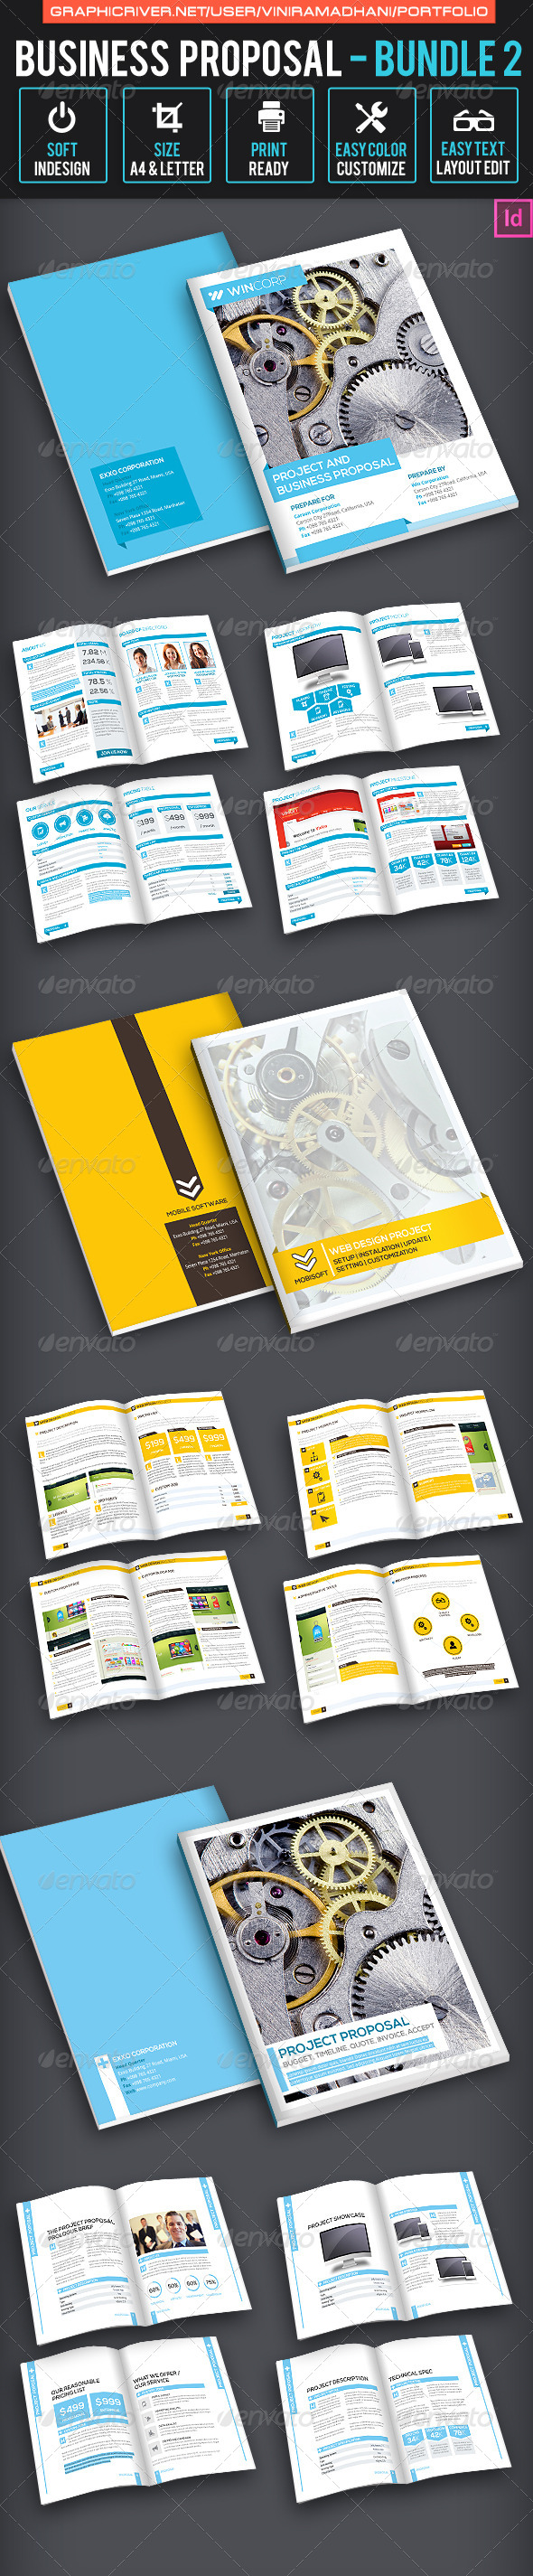 Business Proposal Bundle 2 - Proposals & Invoices Stationery